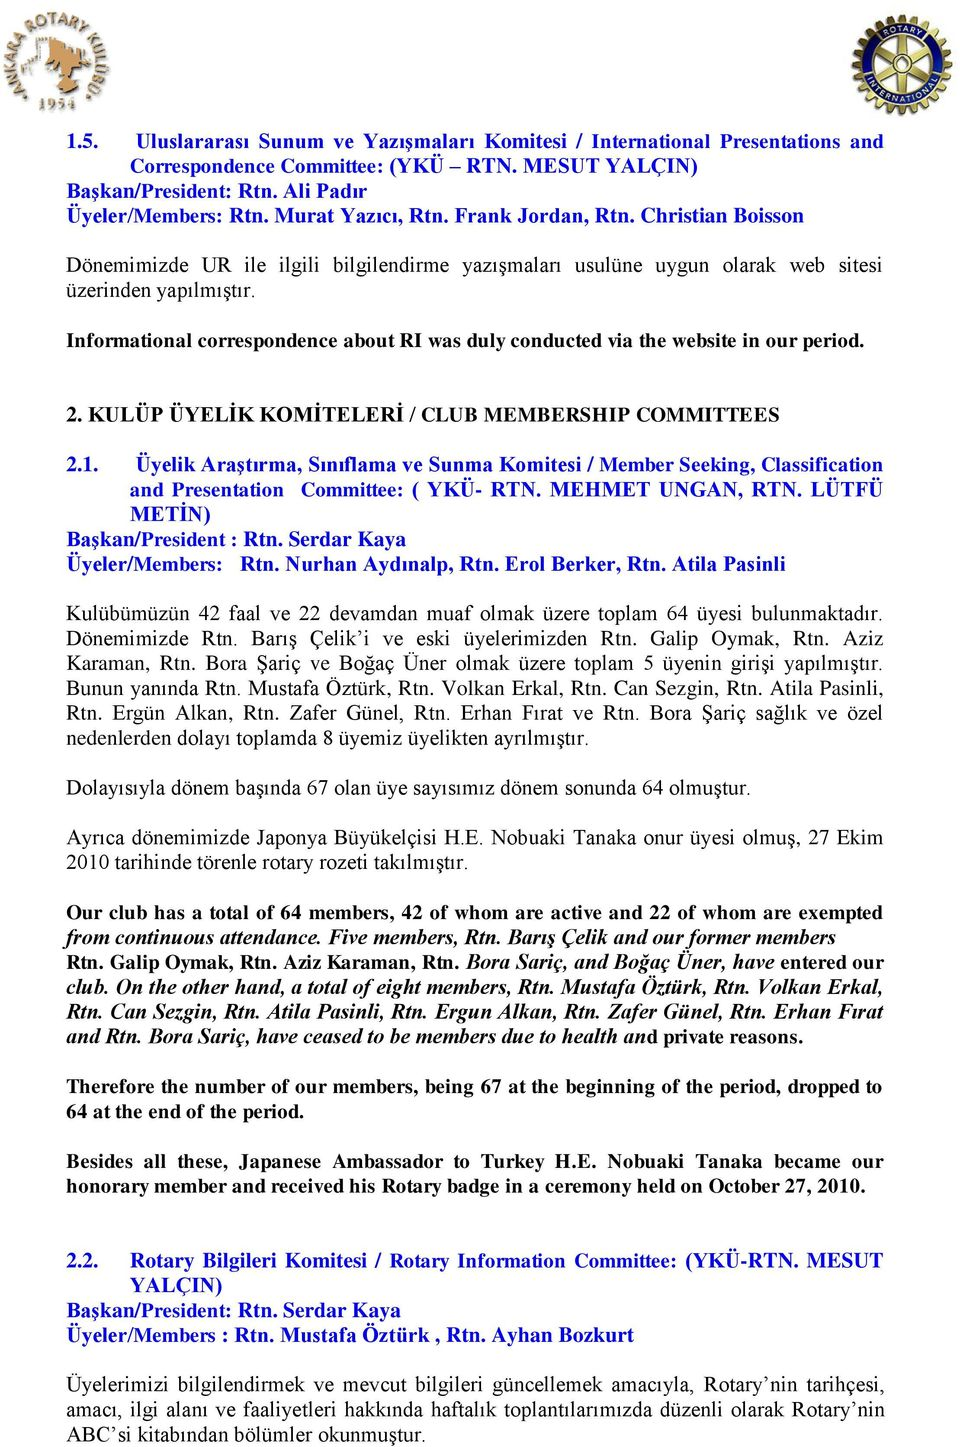 Informational correspondence about RI was duly conducted via the website in our period. 2. KULÜP ÜYELĠK KOMĠTELERĠ / CLUB MEMBERSHIP COMMITTEES 2.1.